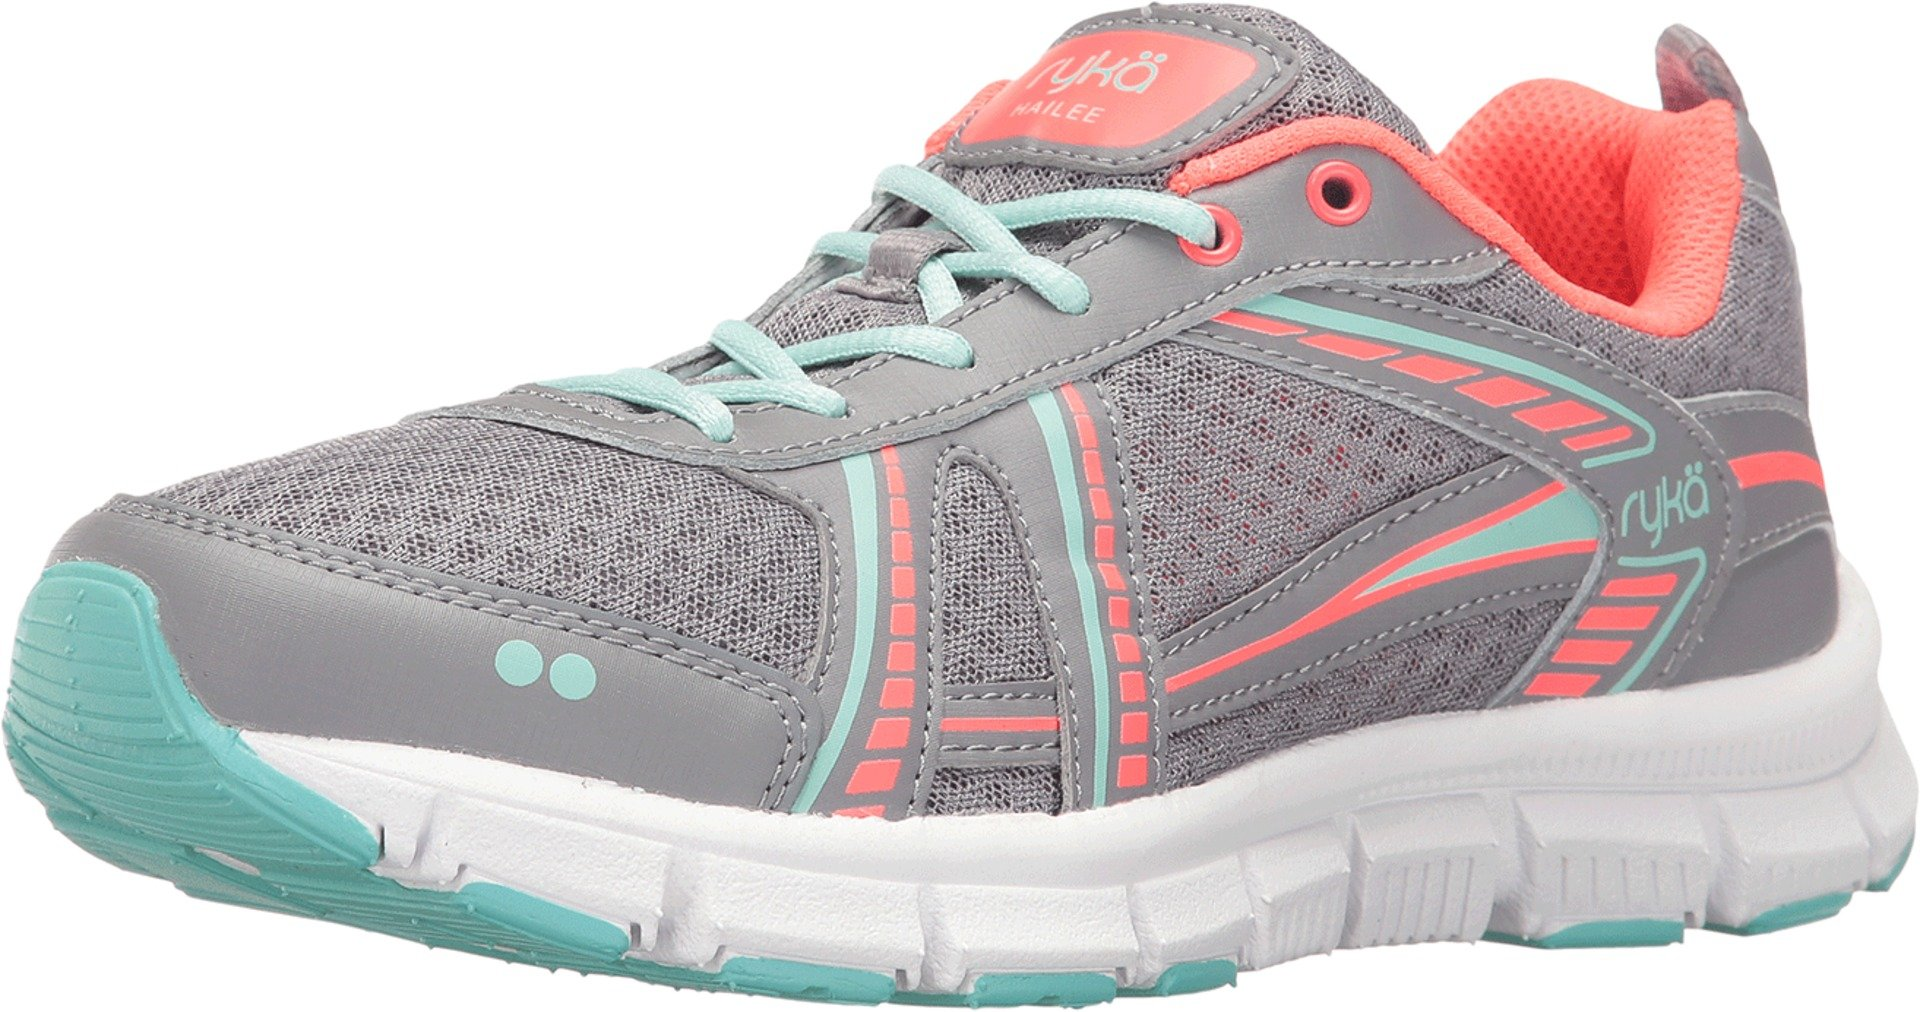 Ryka Women's Hailee SMT Frost Grey/Eggshell Blue/Electric Coral 9.5 D US